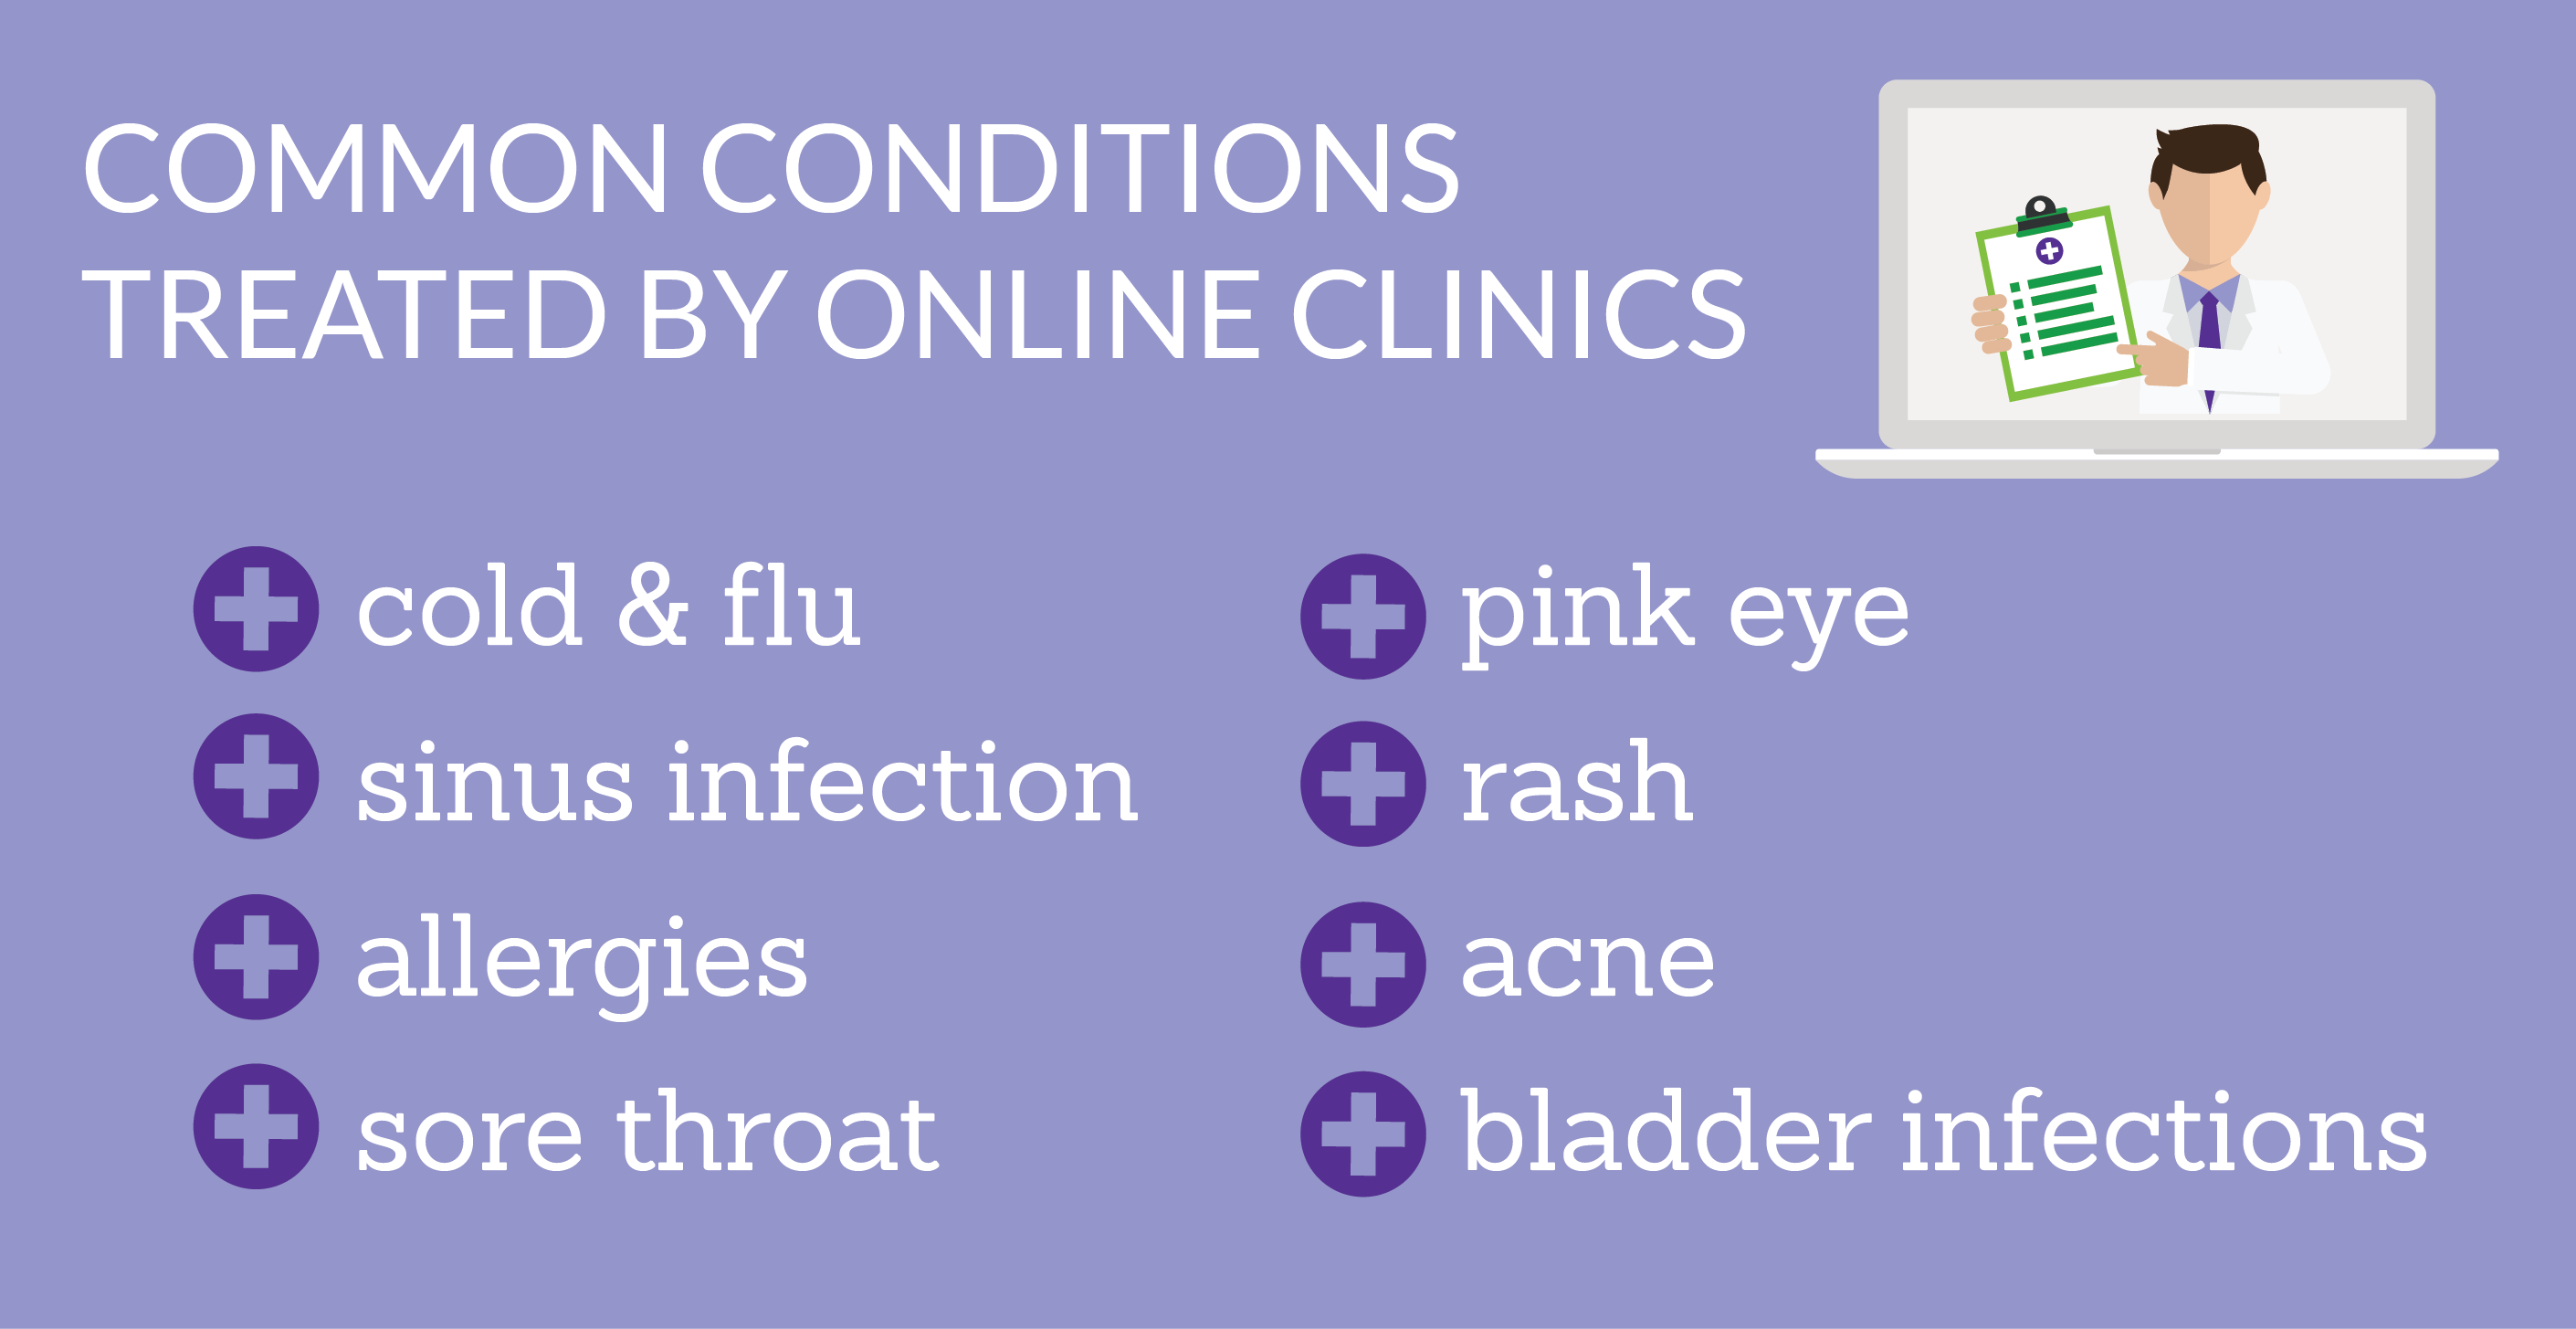 Common conditions treated by online clinics